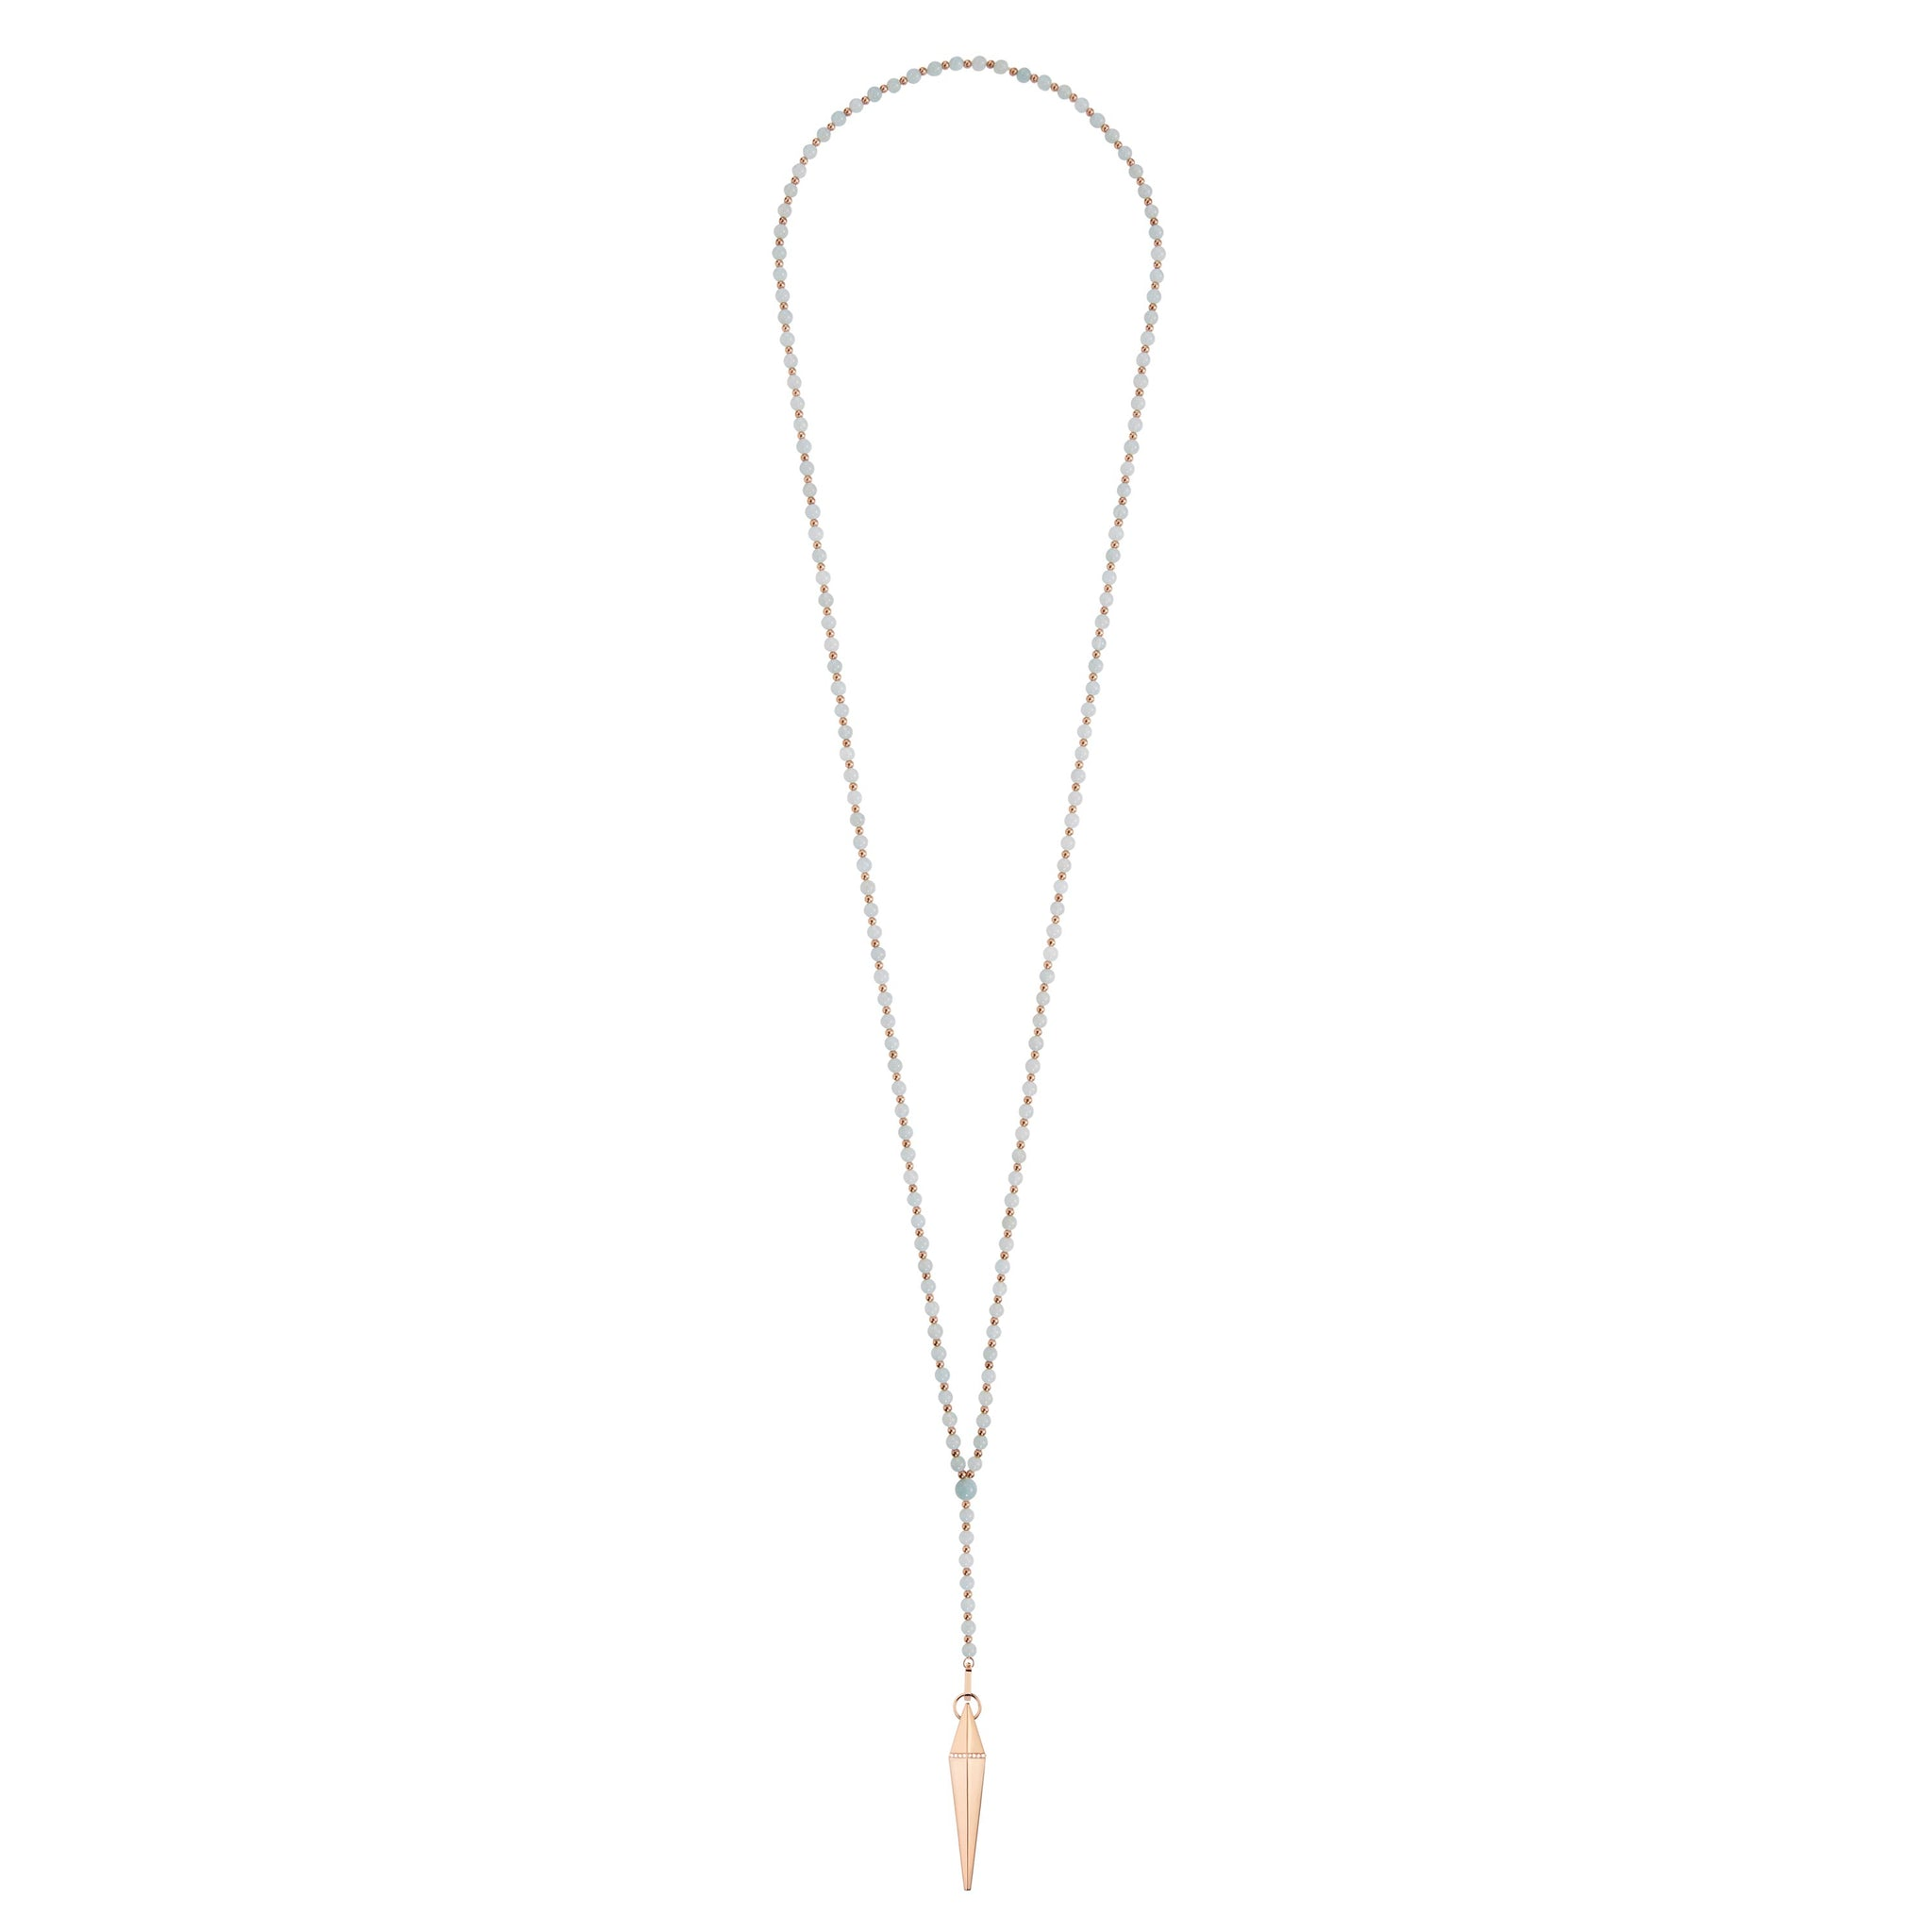 Diane Kordas Aquamarine Spear Necklace